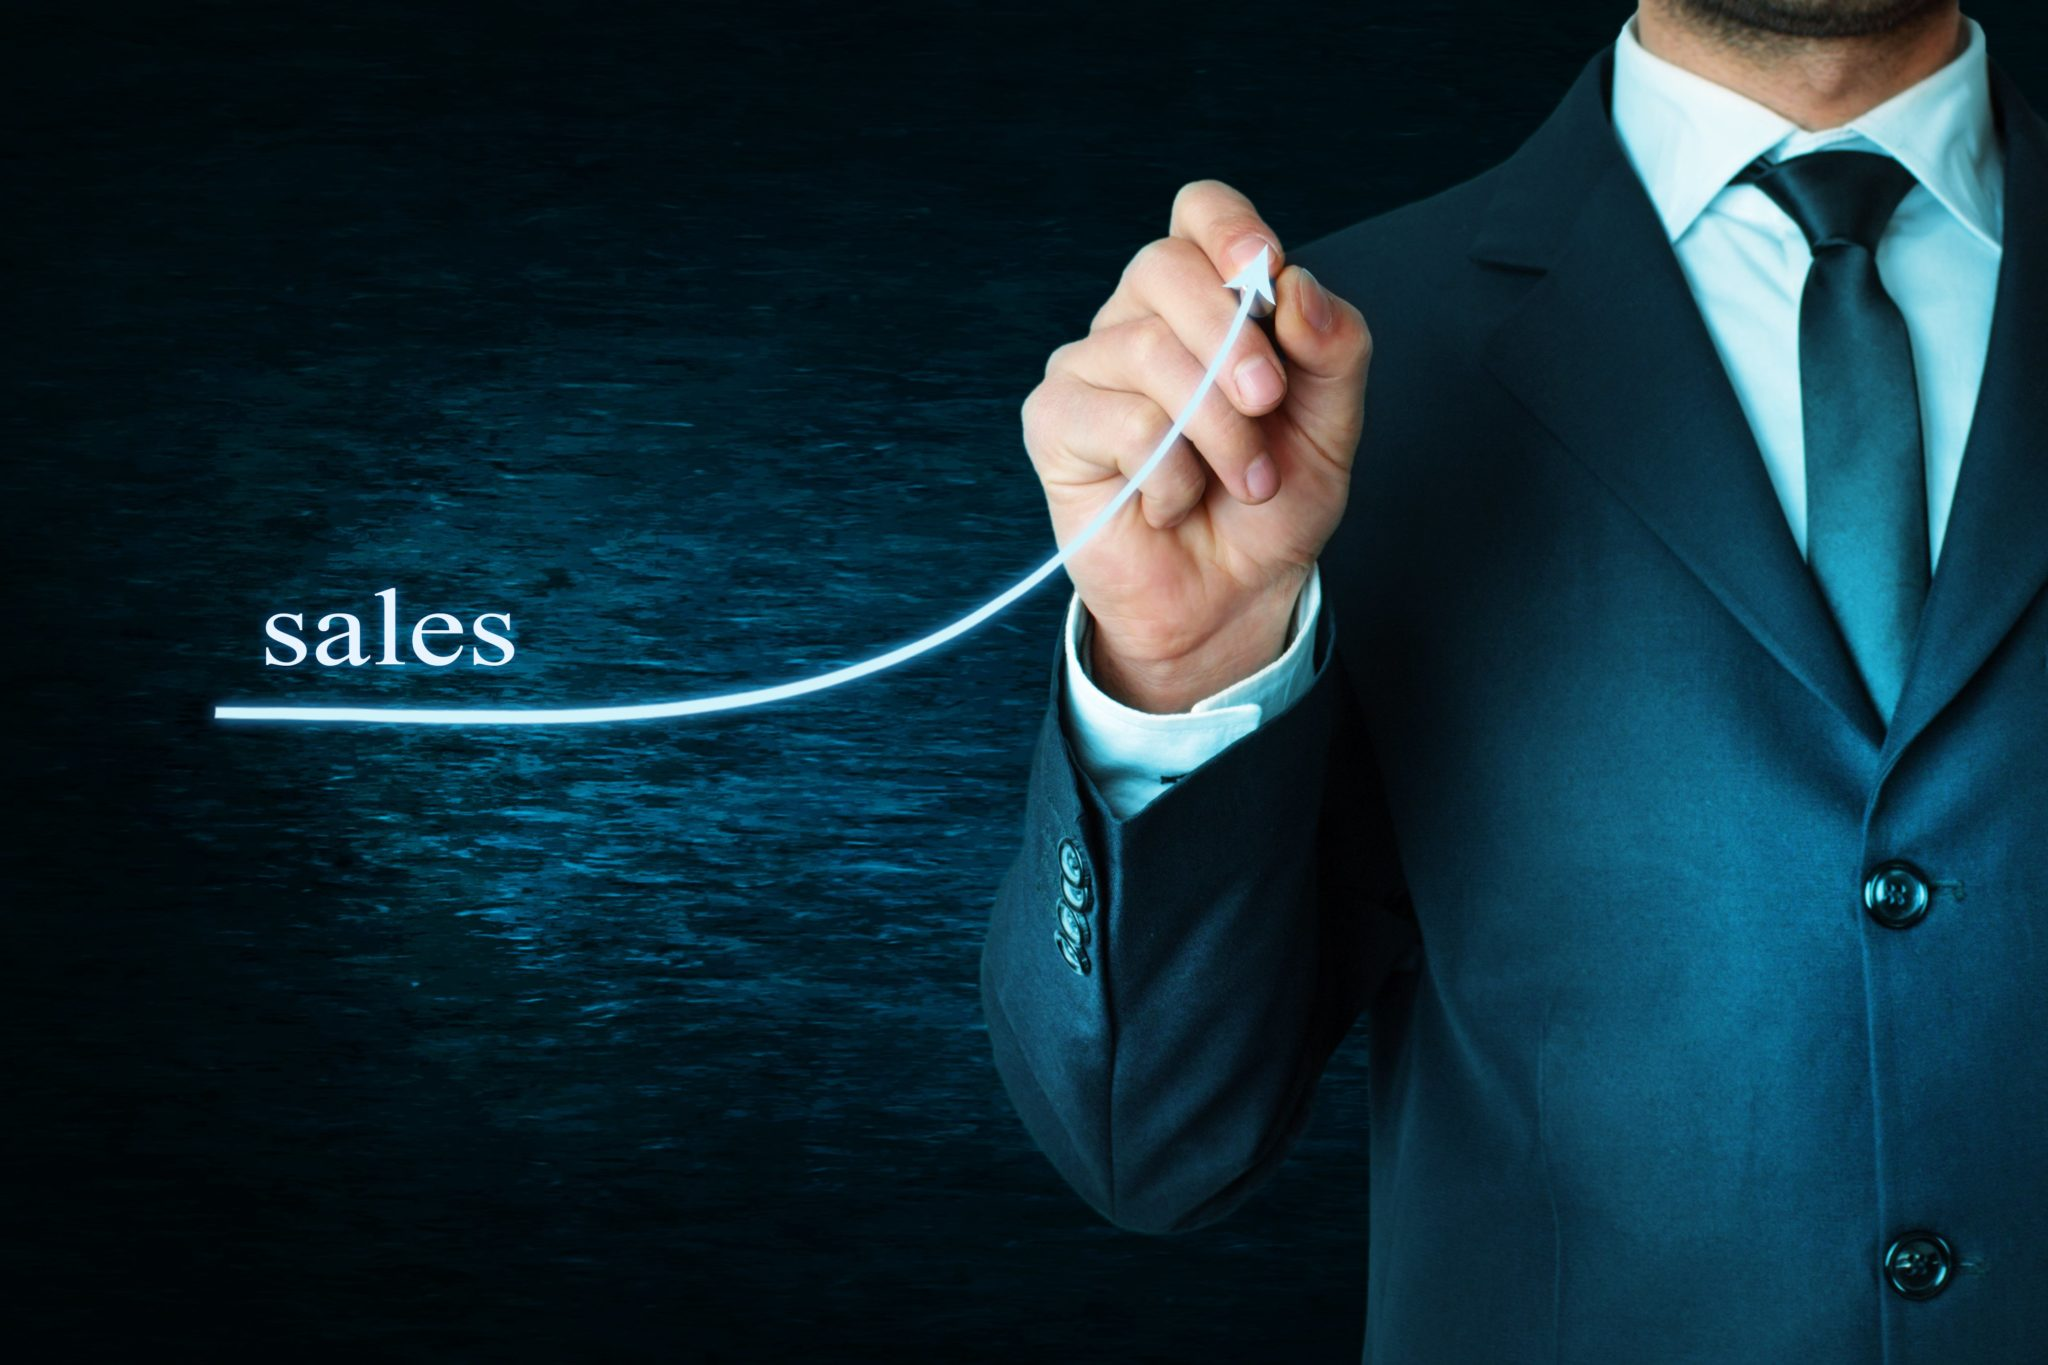 3 Great Sales Questions to Help You Sell More